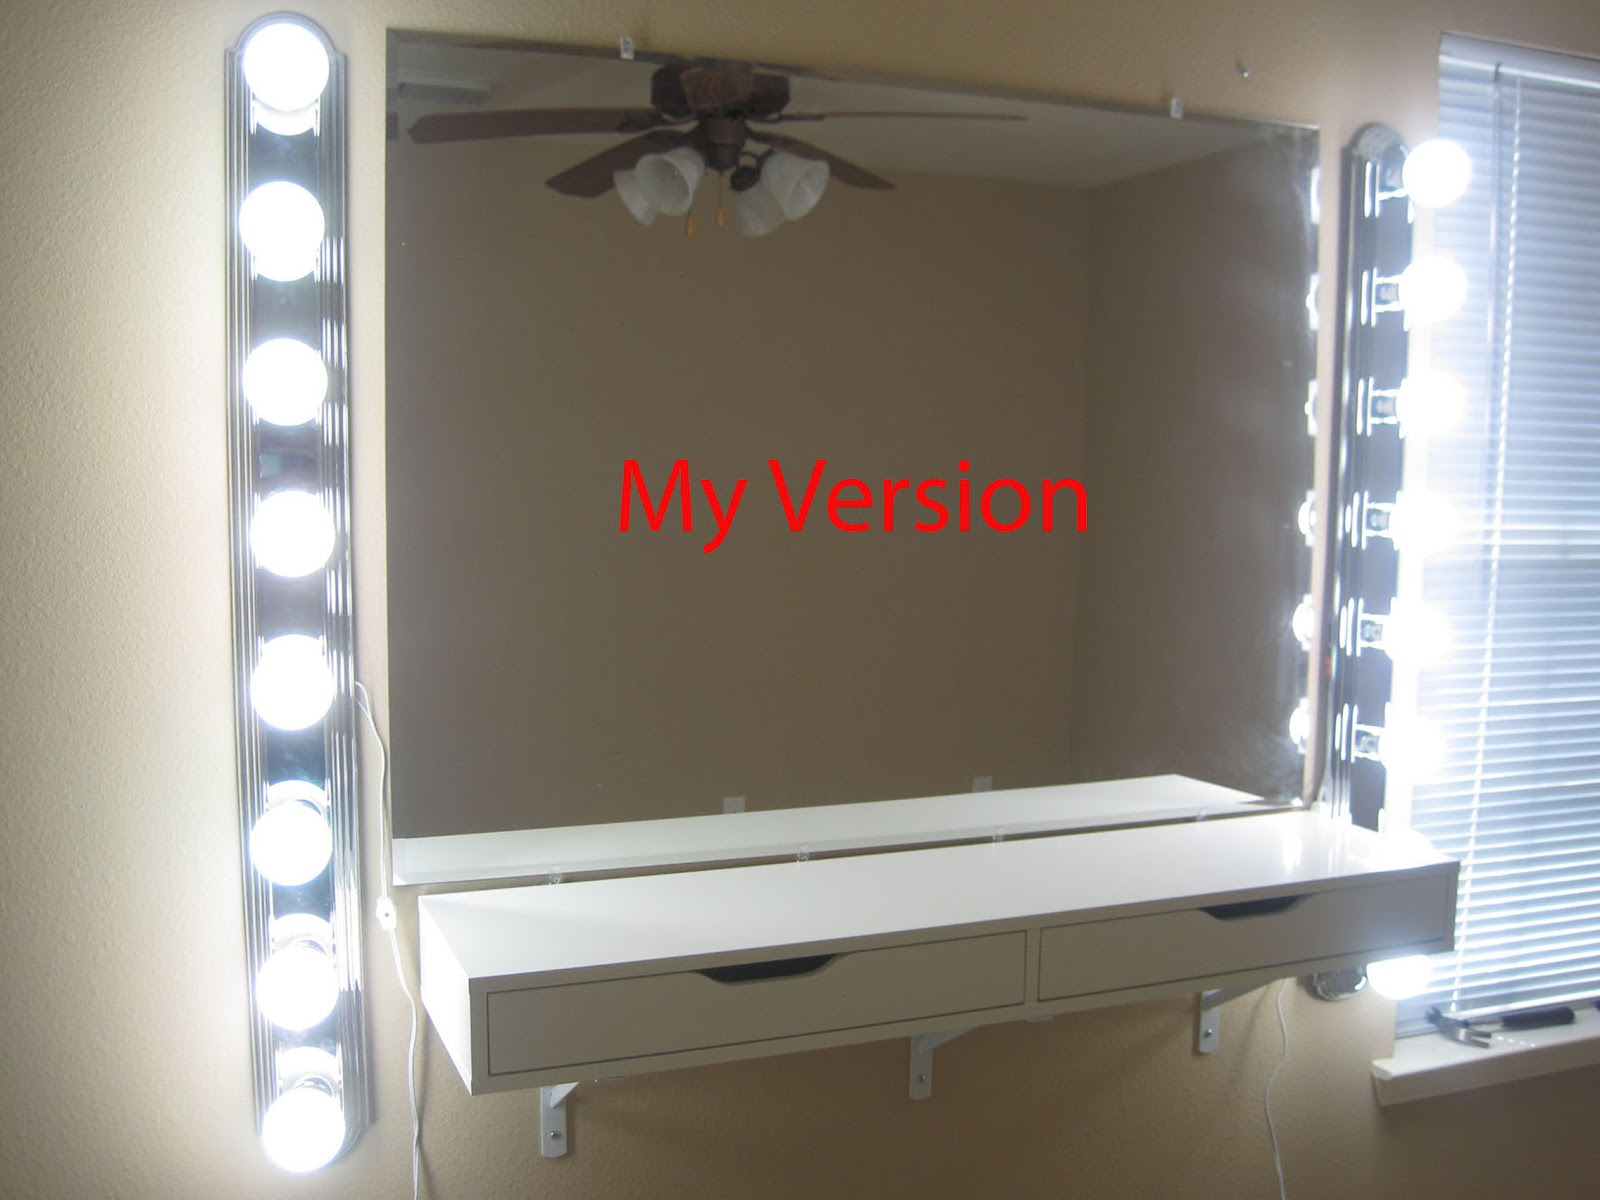 Vanity Mirror Lights Diy : chabz: DIY: Vanity Mirror and Lights